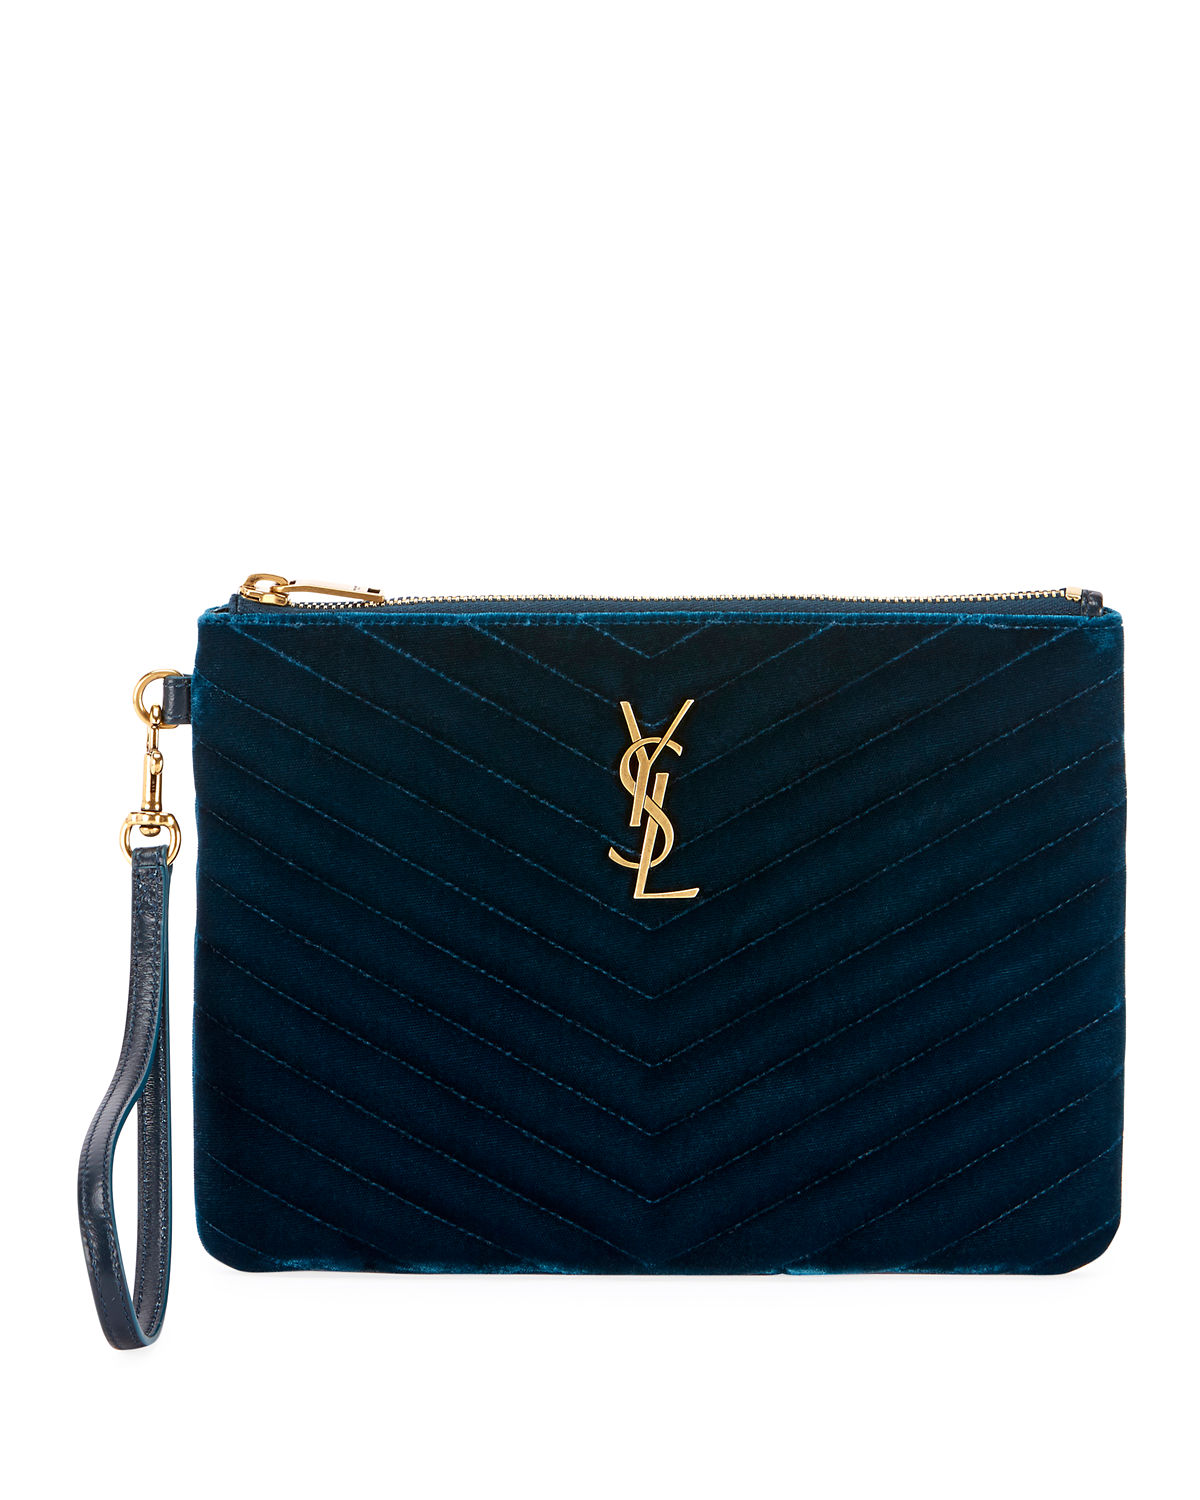 Saint Laurent Master Small Velvet Monogram Ysl Wristlet